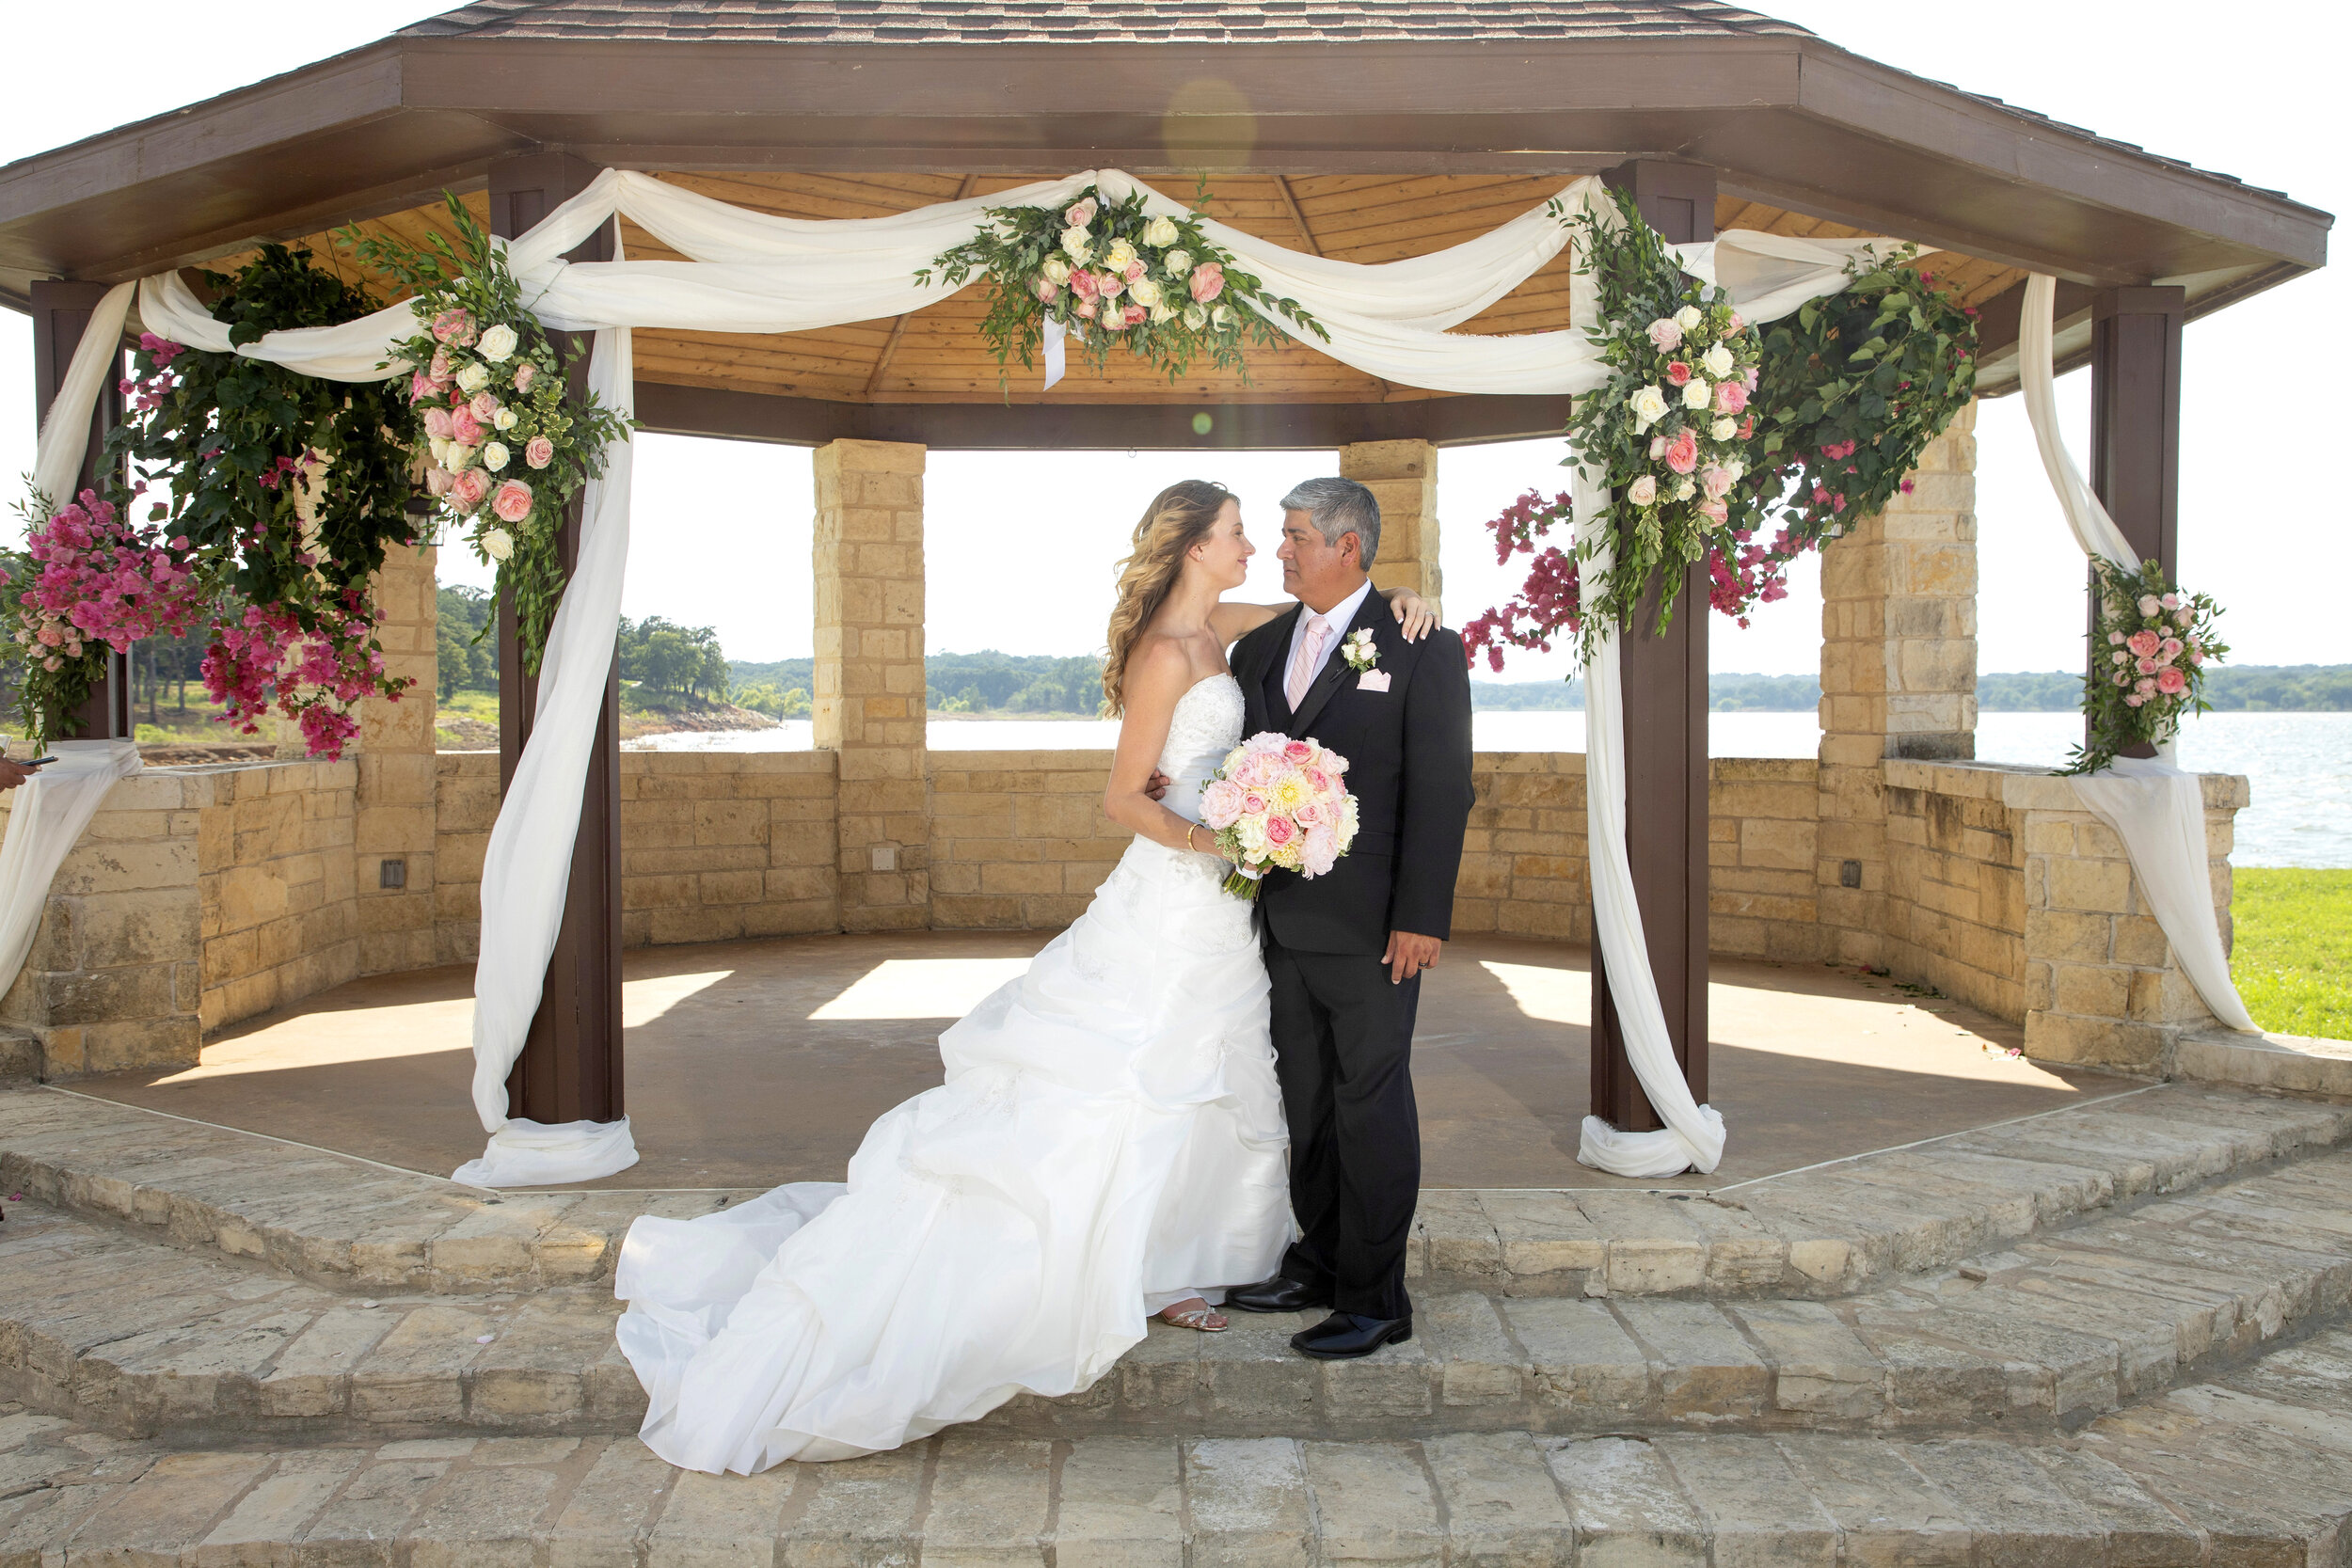 Alexis and Michael at paradise Cove on Lake Grapevine, still an awesome venue right on the lake!!